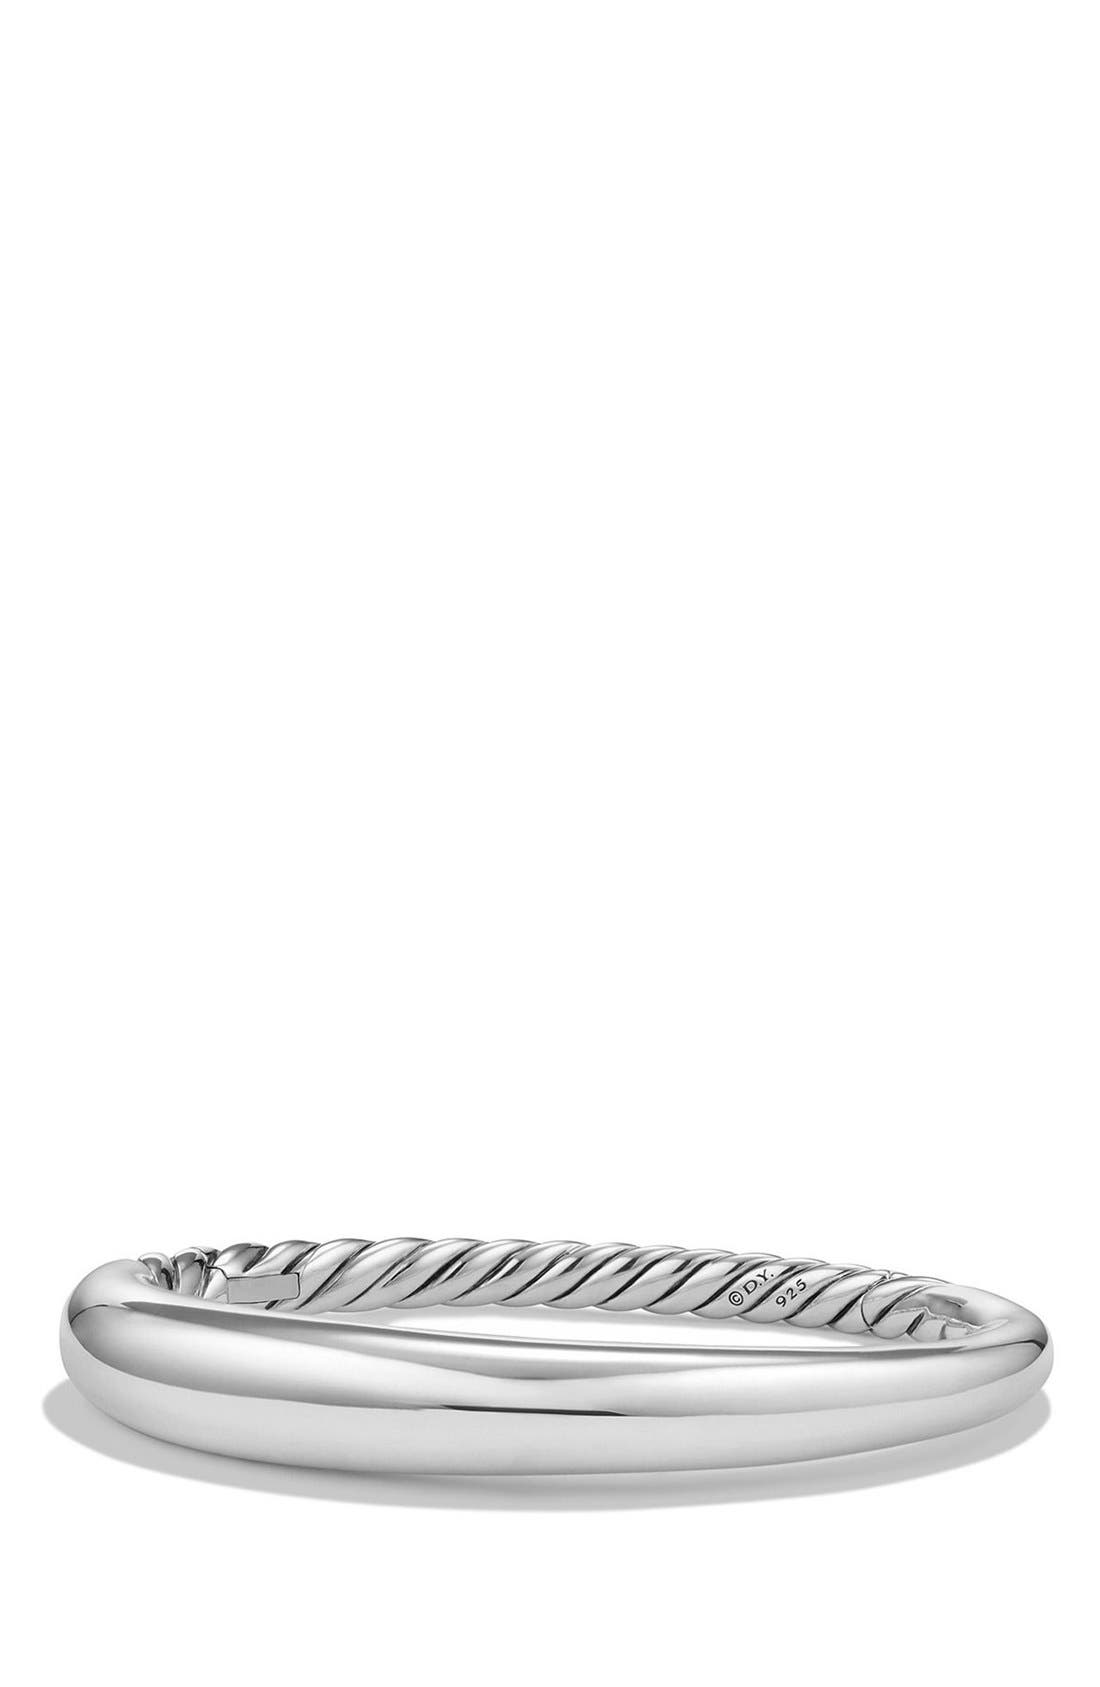 DAVID YURMAN, 'Pure Form' Small Sterling Silver Bracelet, Main thumbnail 1, color, SILVER